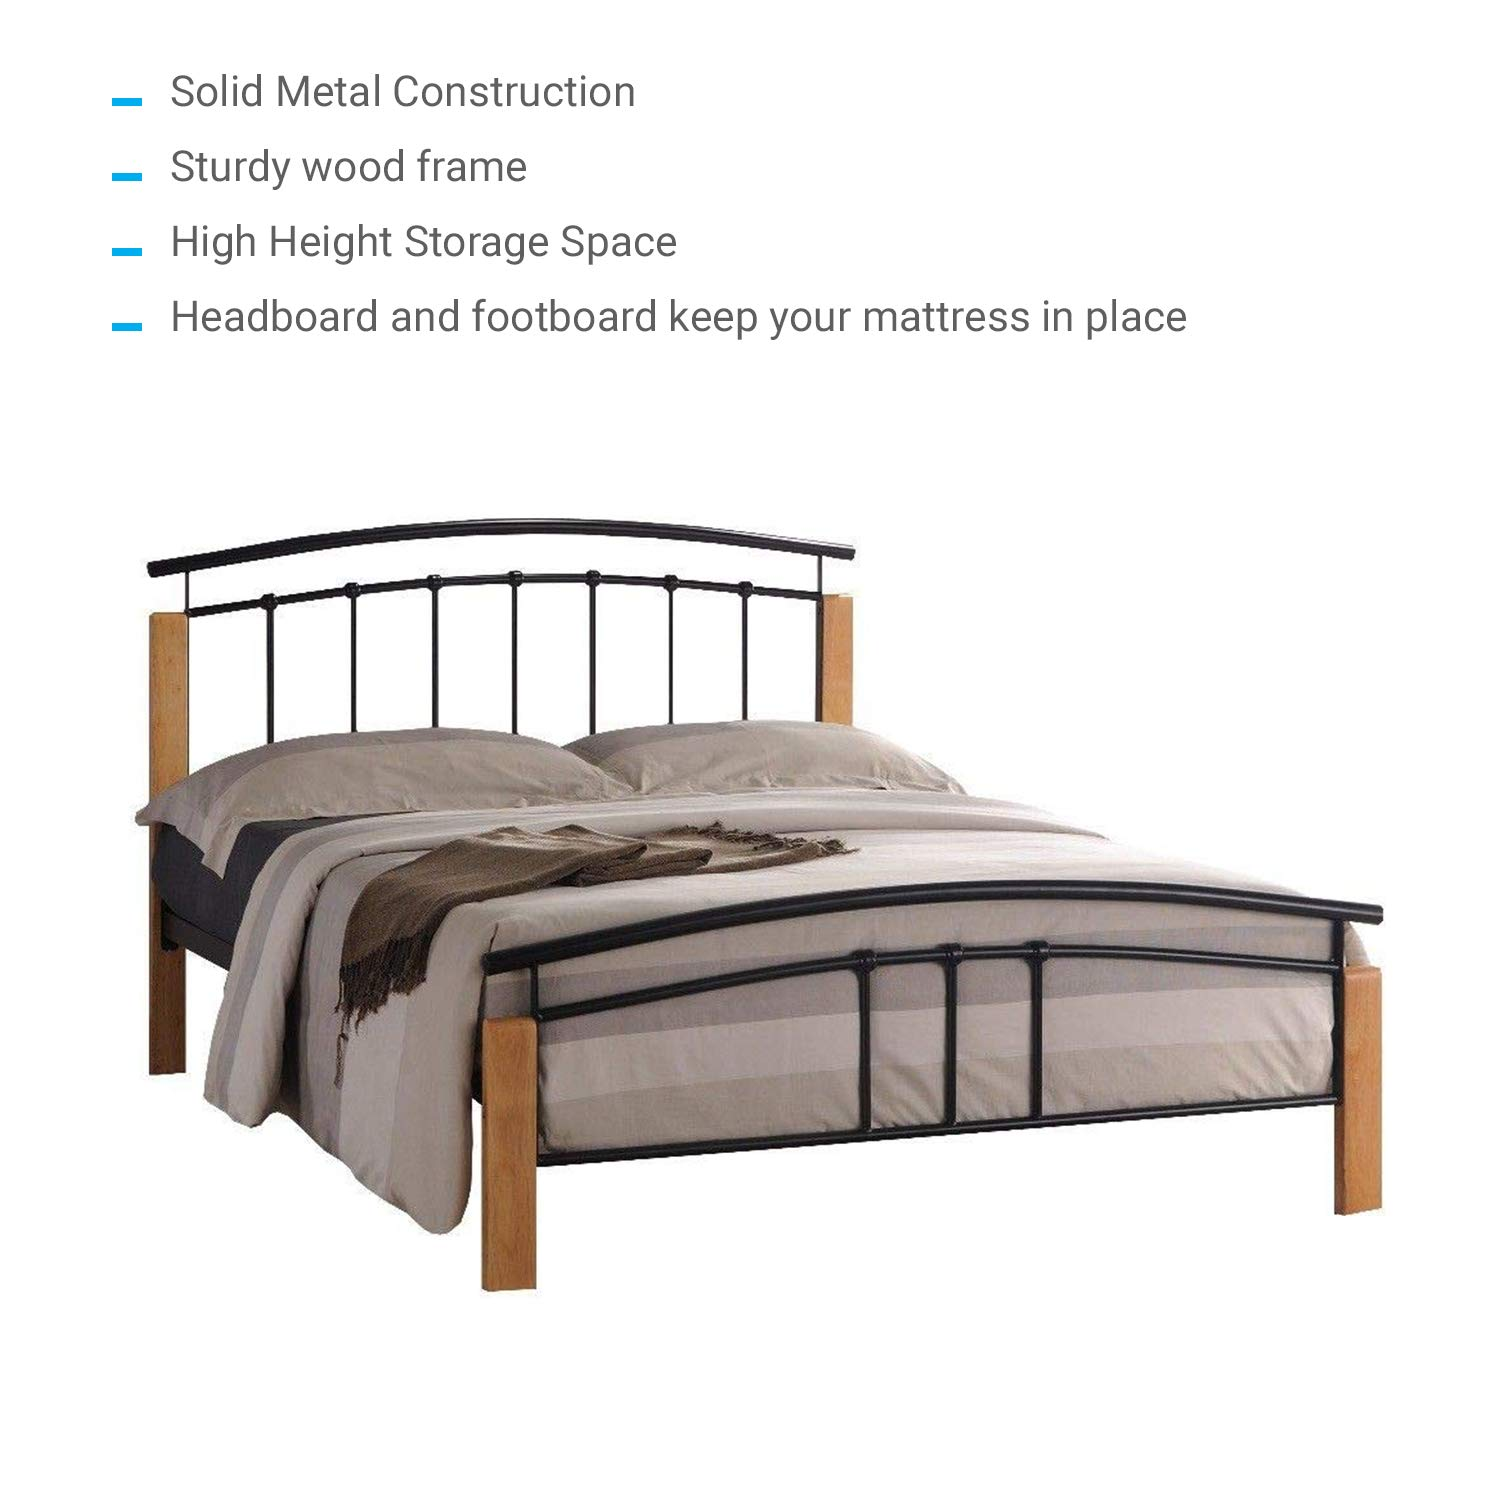 Stupendous Limitless Home Tetras Modern Beech Wooden And Premium Metal Bed With Under Bed Storage Space Headboard Footboard Slats Support Multiple Sizes Creativecarmelina Interior Chair Design Creativecarmelinacom